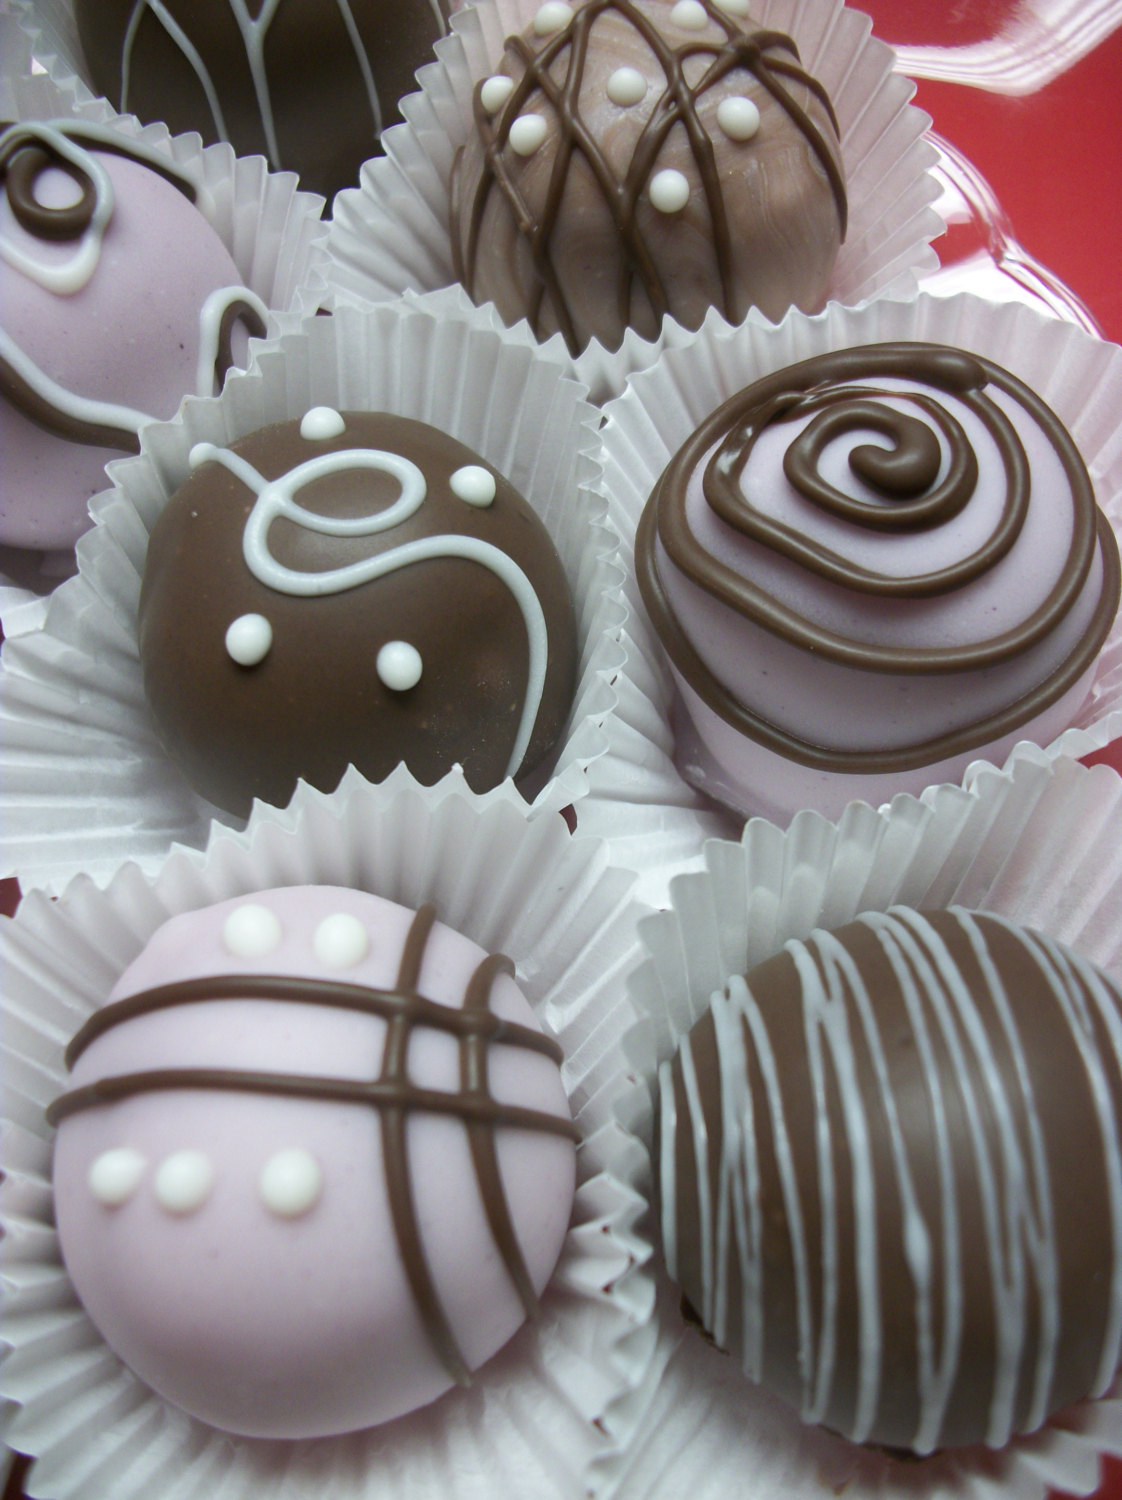 Cake Balls Lavender Chocolate Colored Coated 12 Pieces